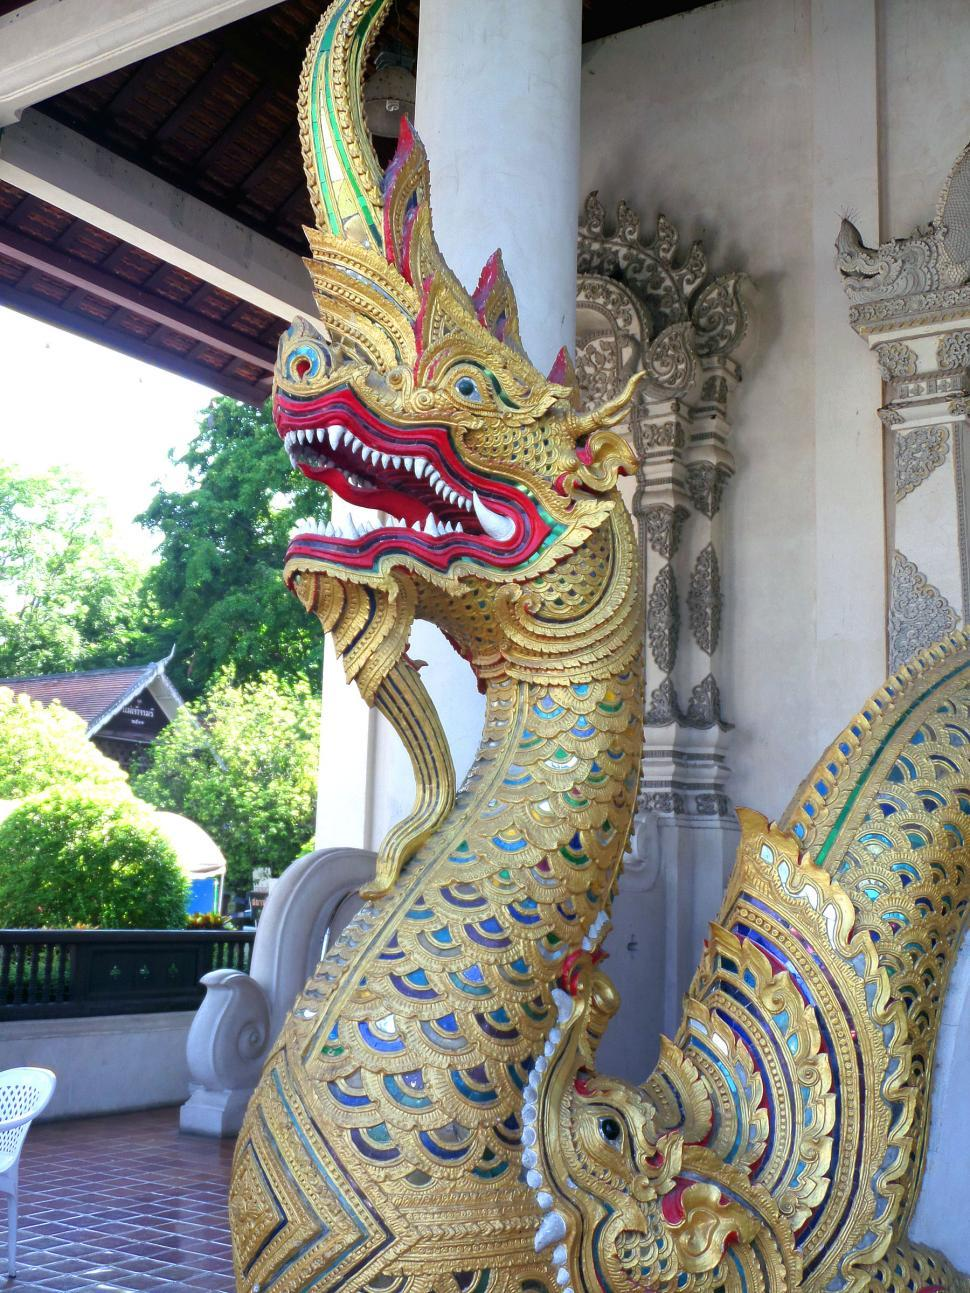 Download Free Stock HD Photo of Naga - Temple guardian  Online